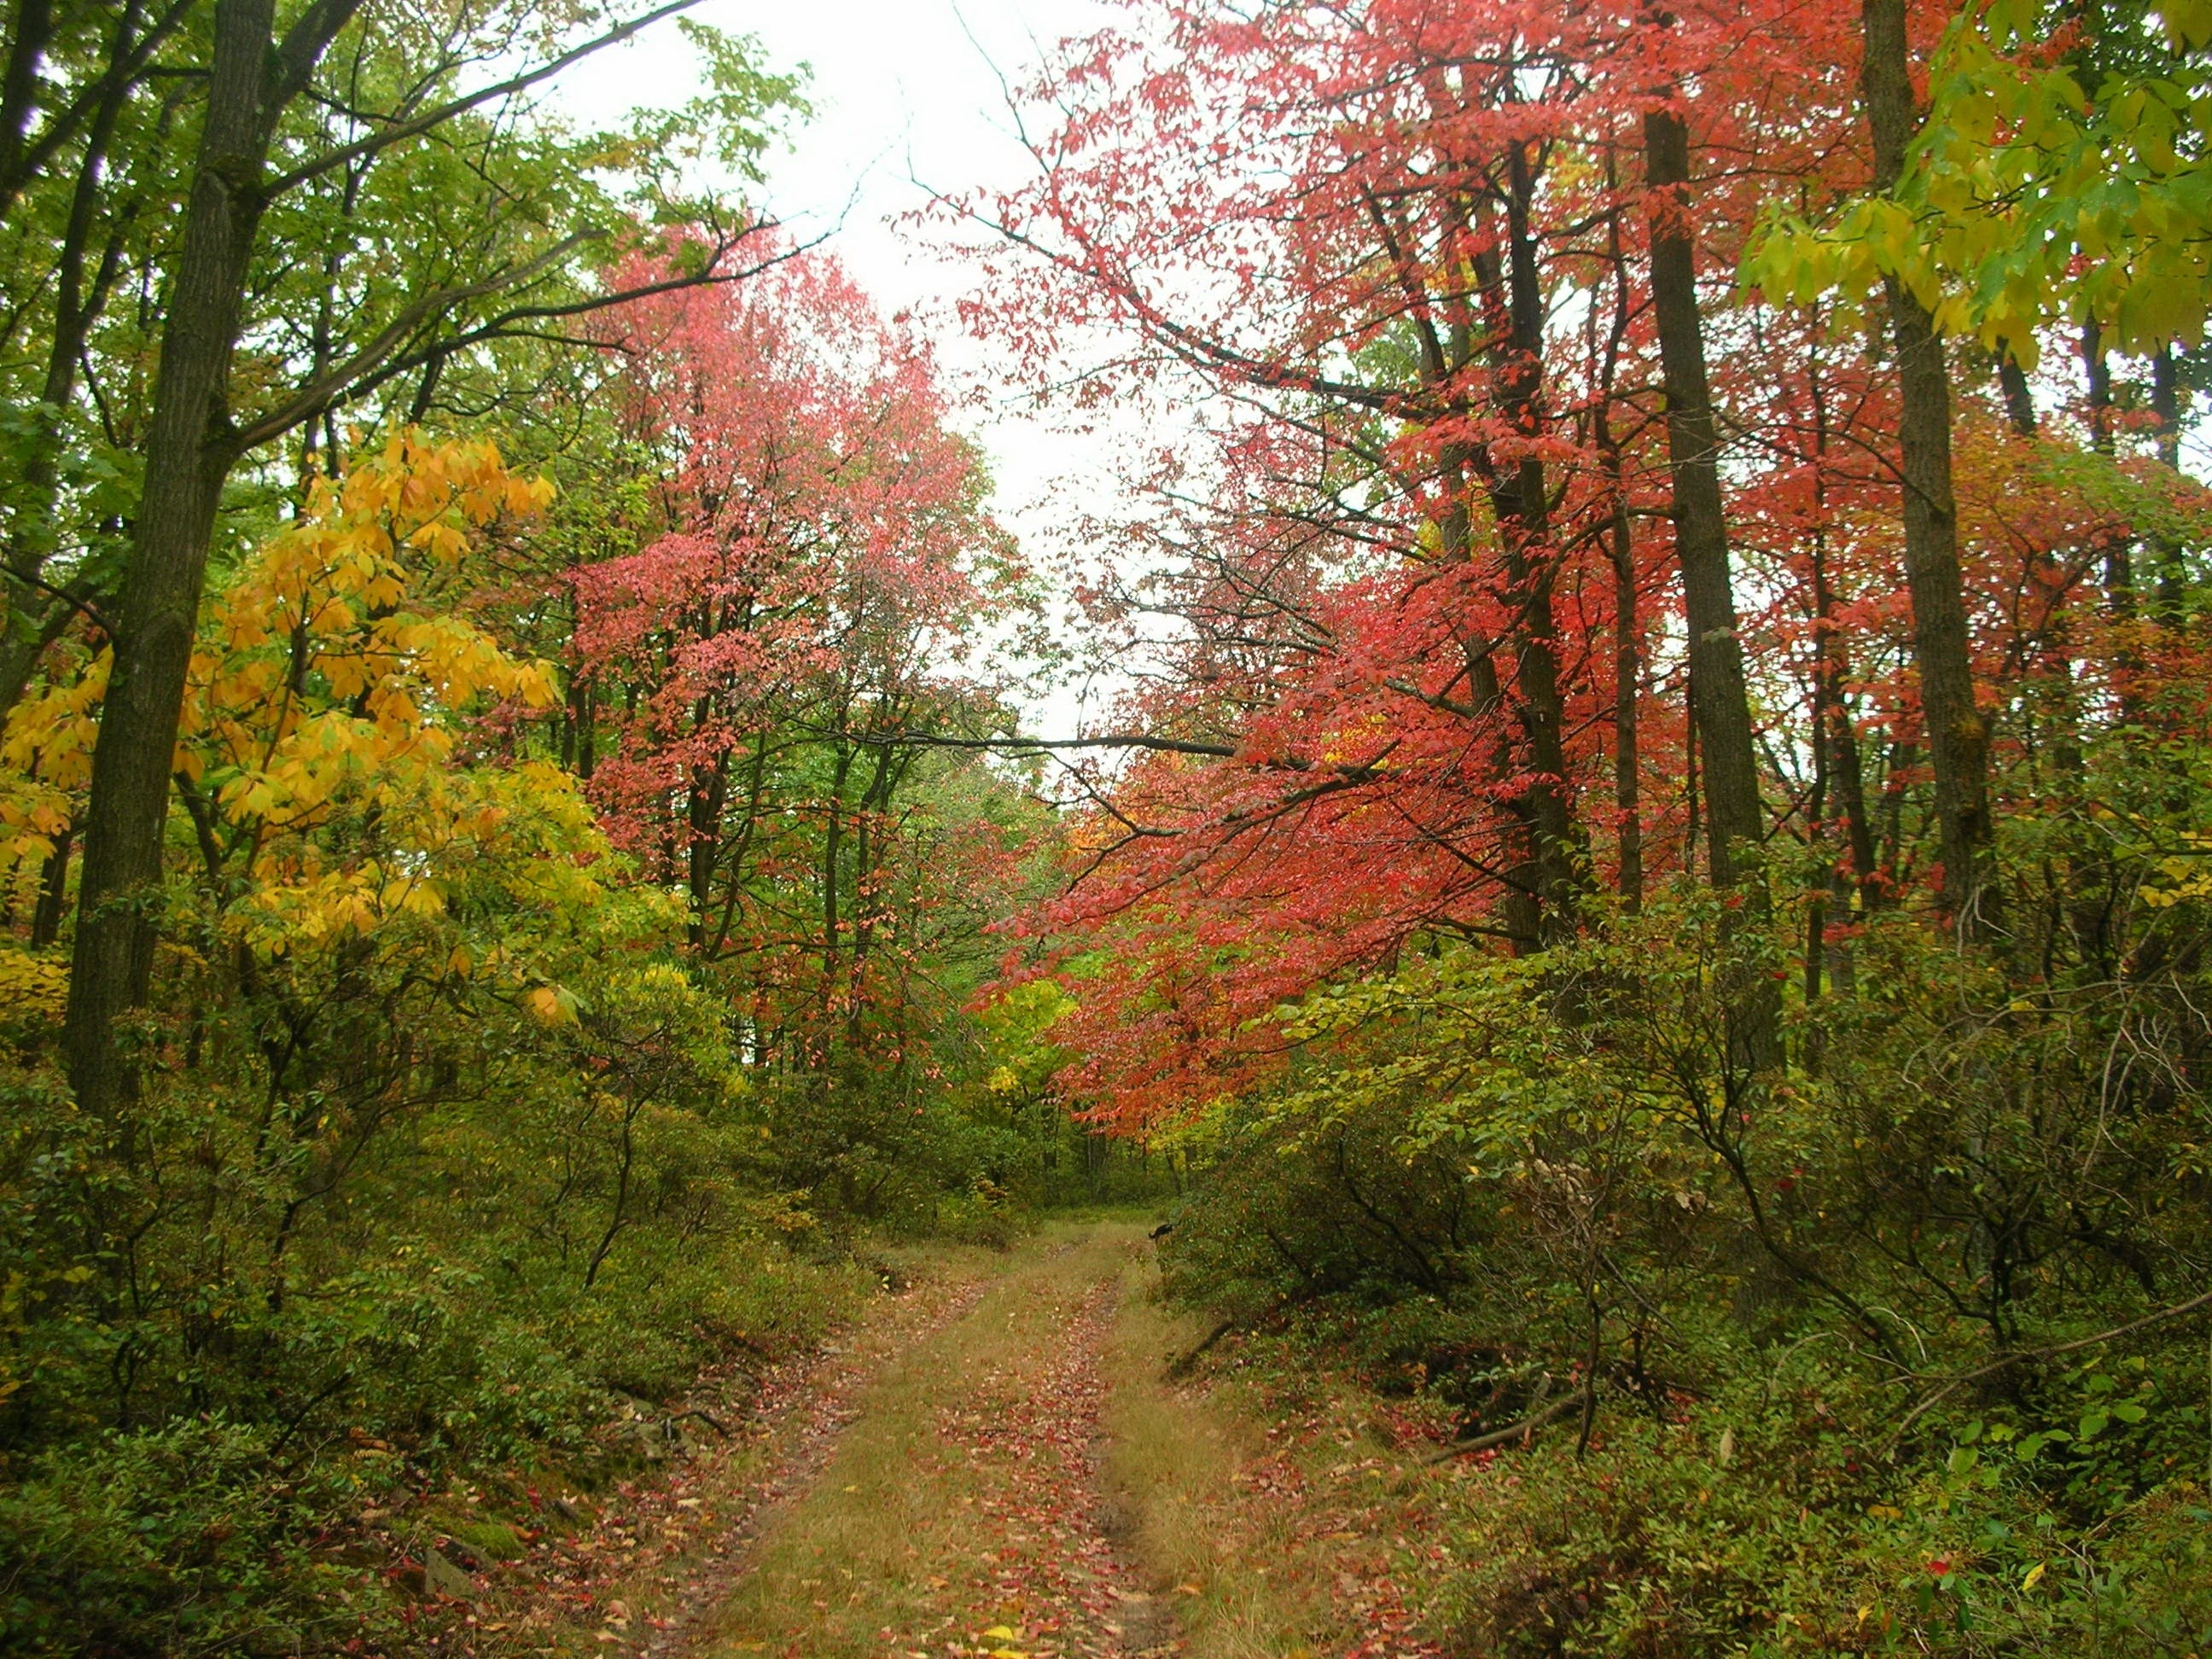 A forest in the fall.